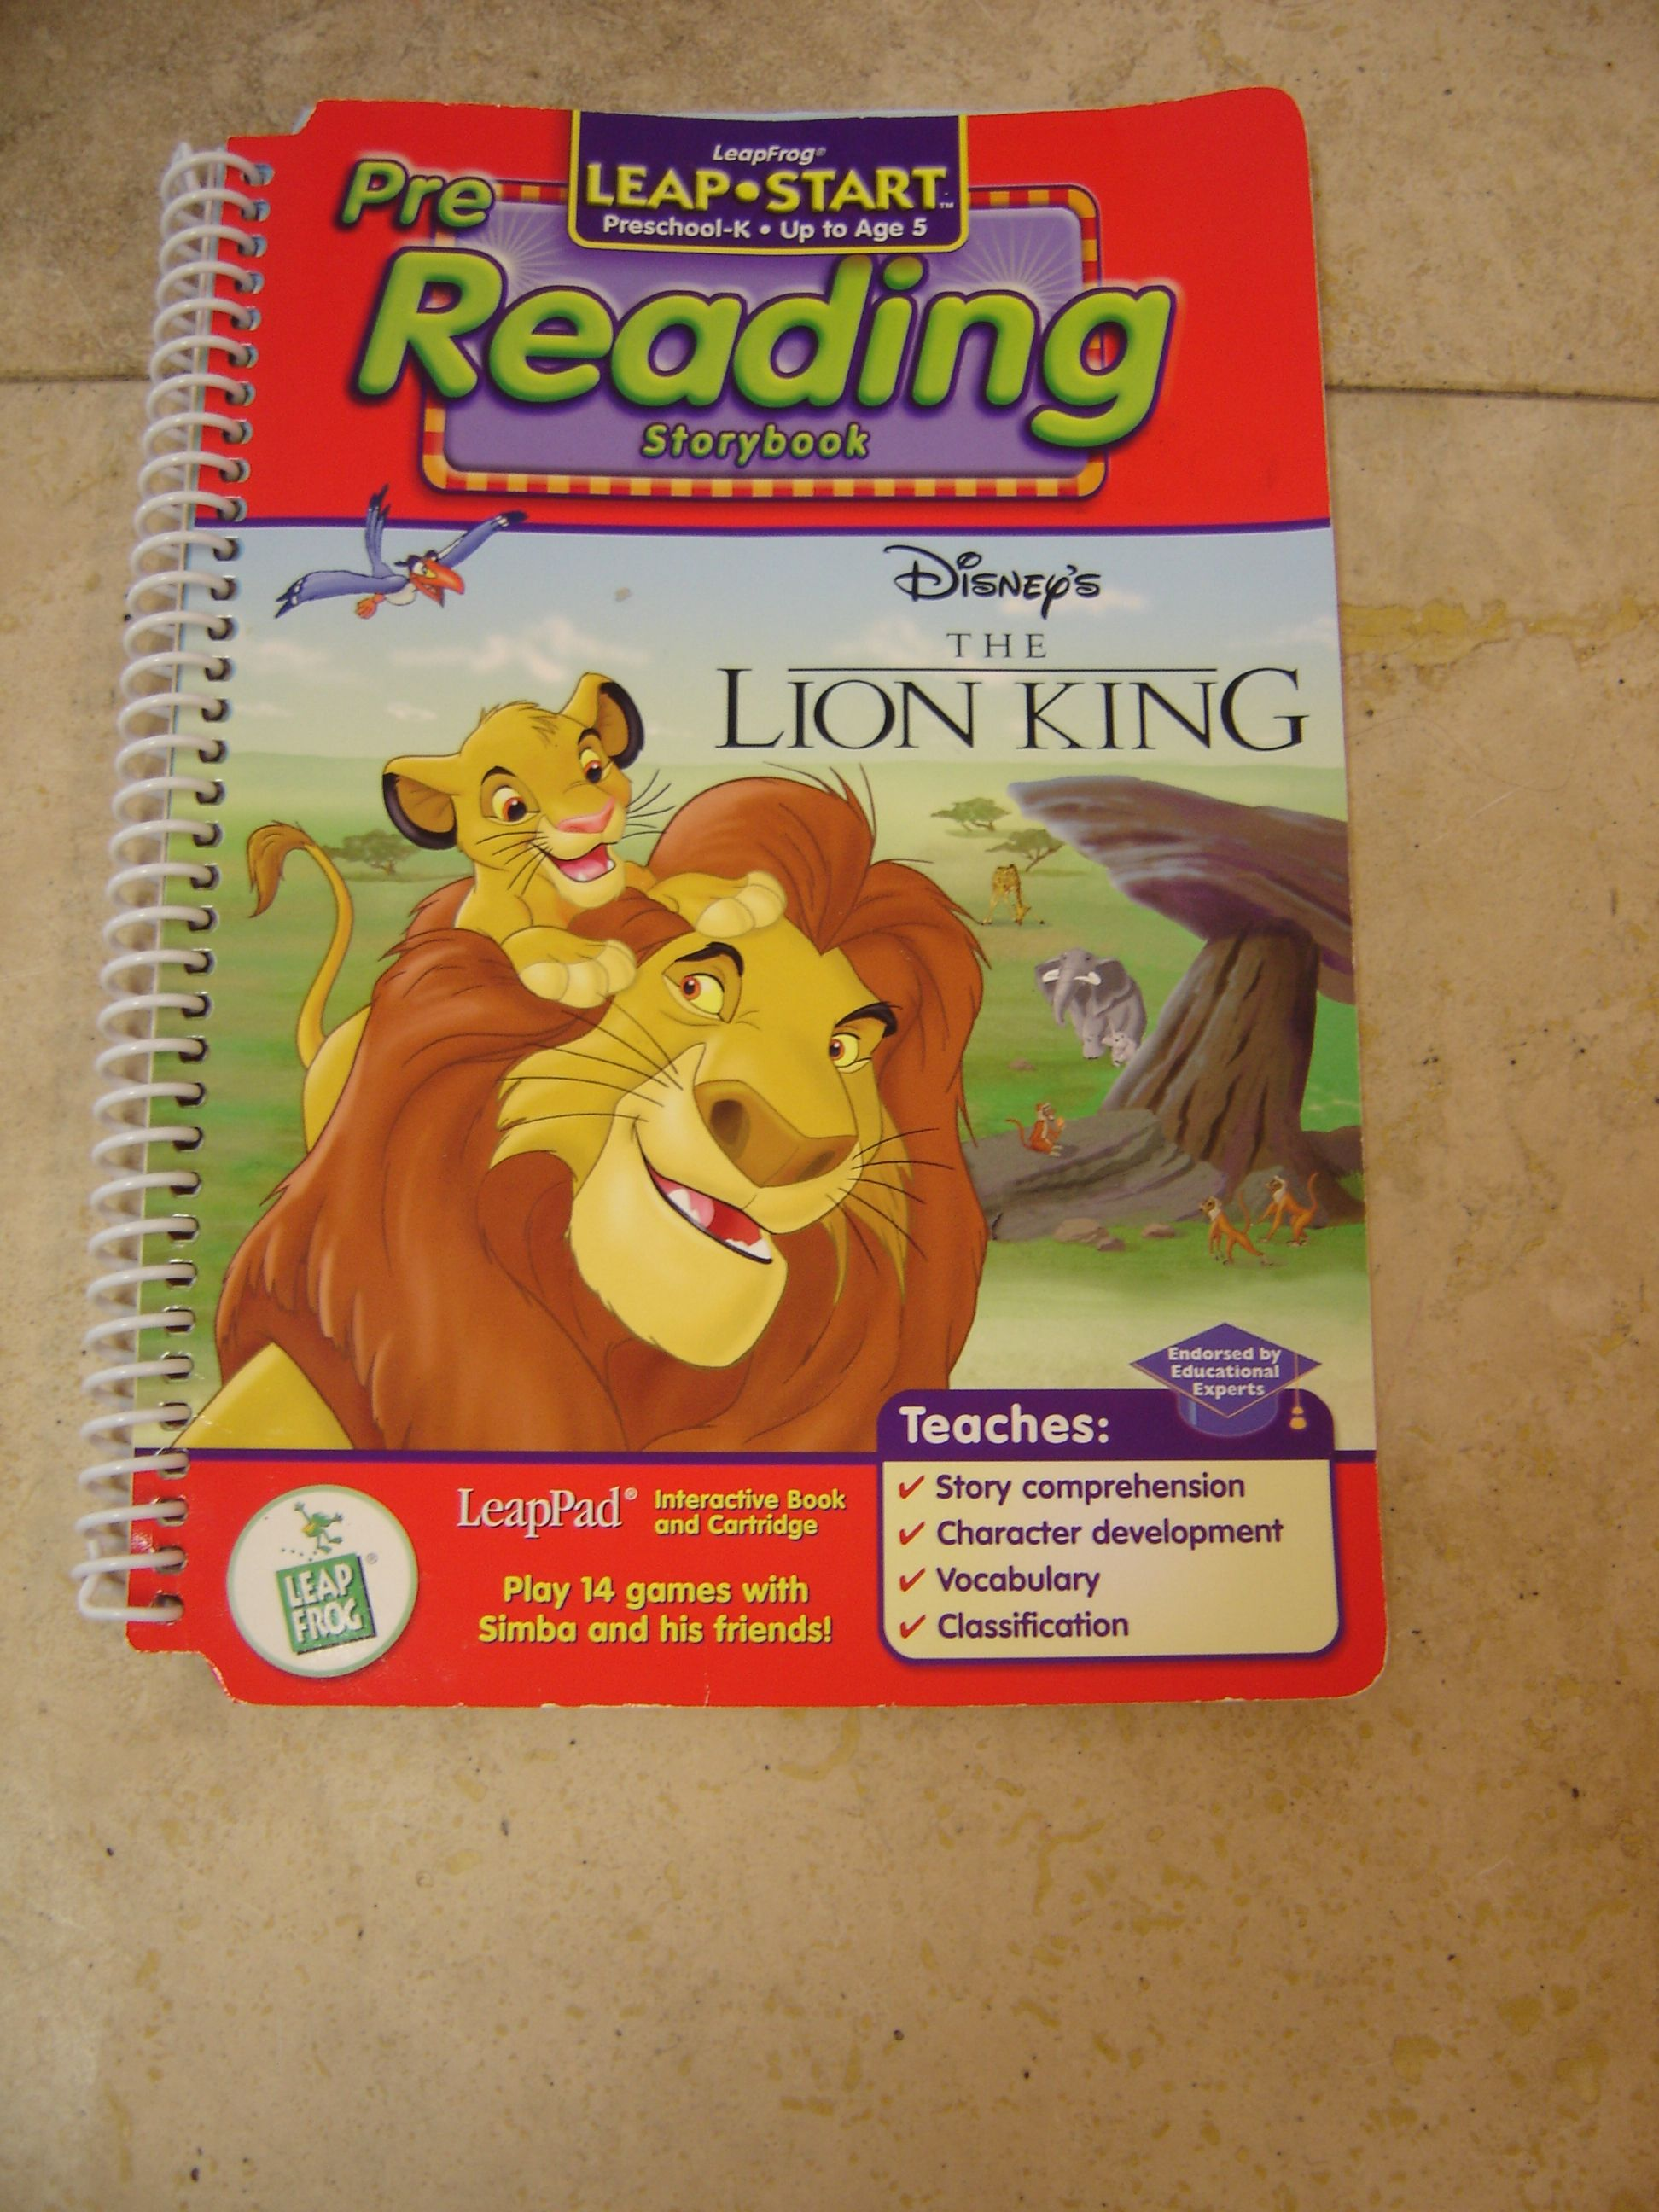 Leap Frog Leappad Pre Reading Disneys The Lion King Story Book No